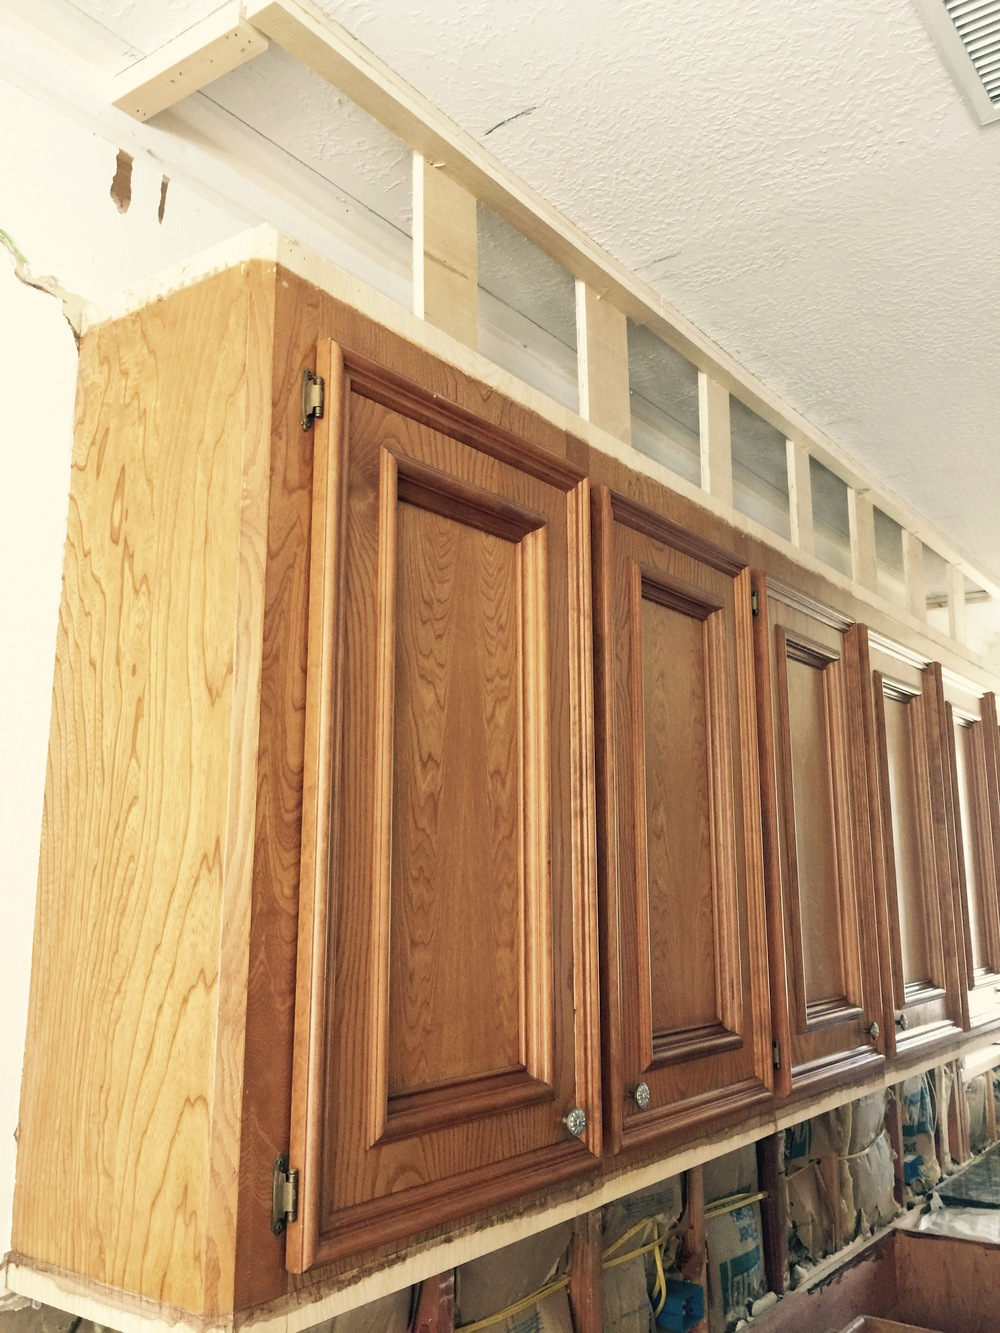 Charmant Kitchen Cabinets Under Construction